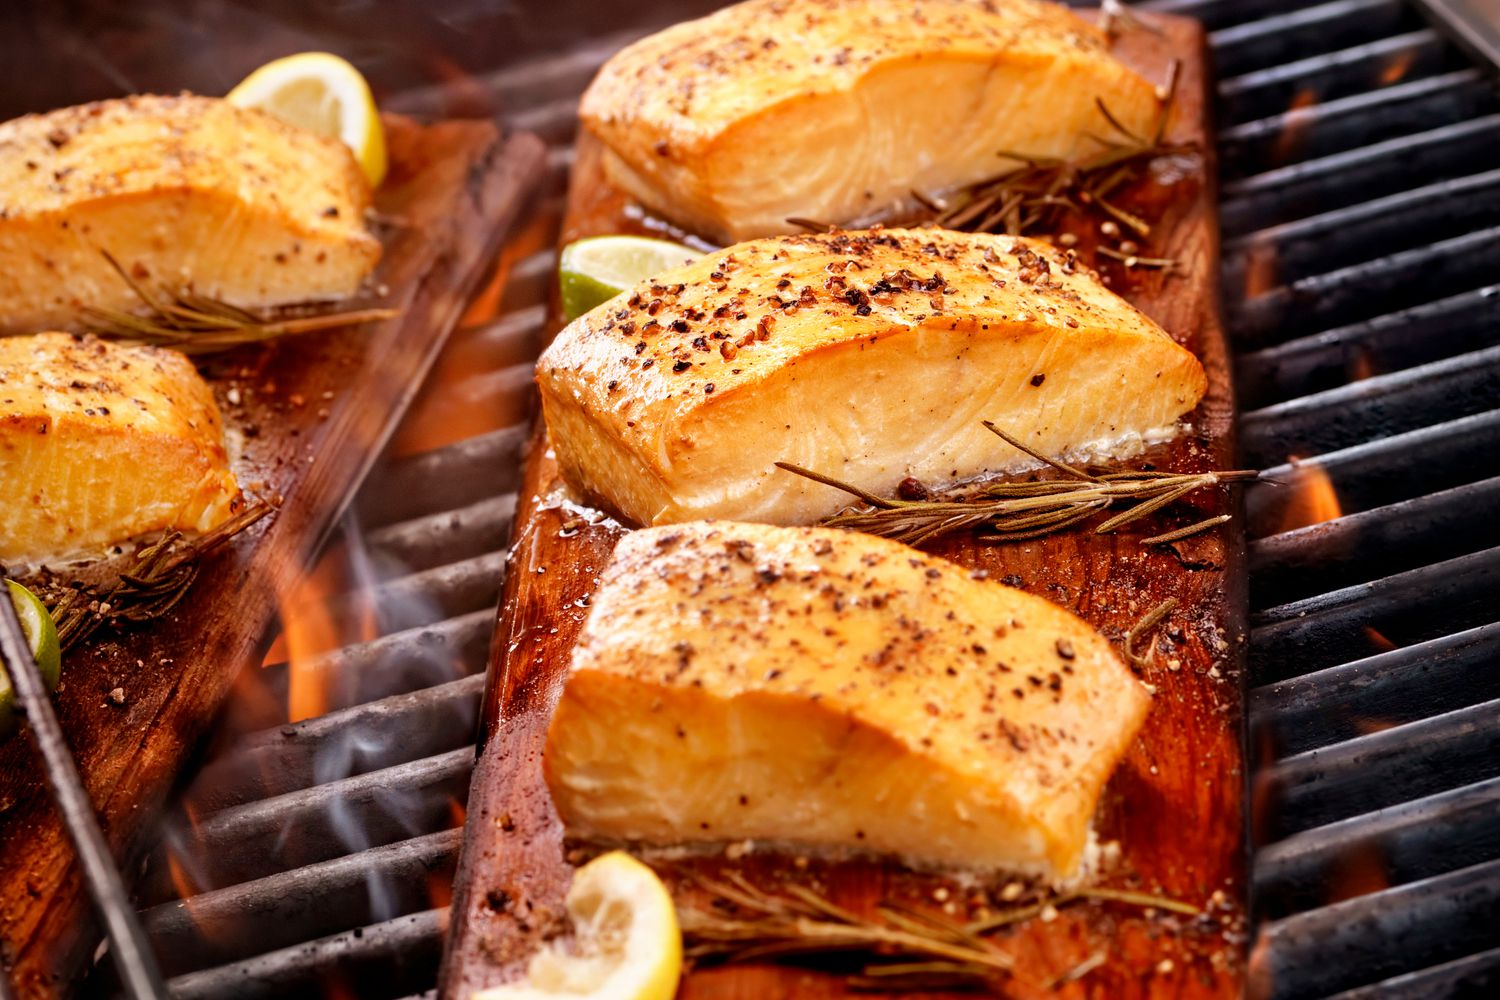 How to Make Smoked Salmon on the Grill